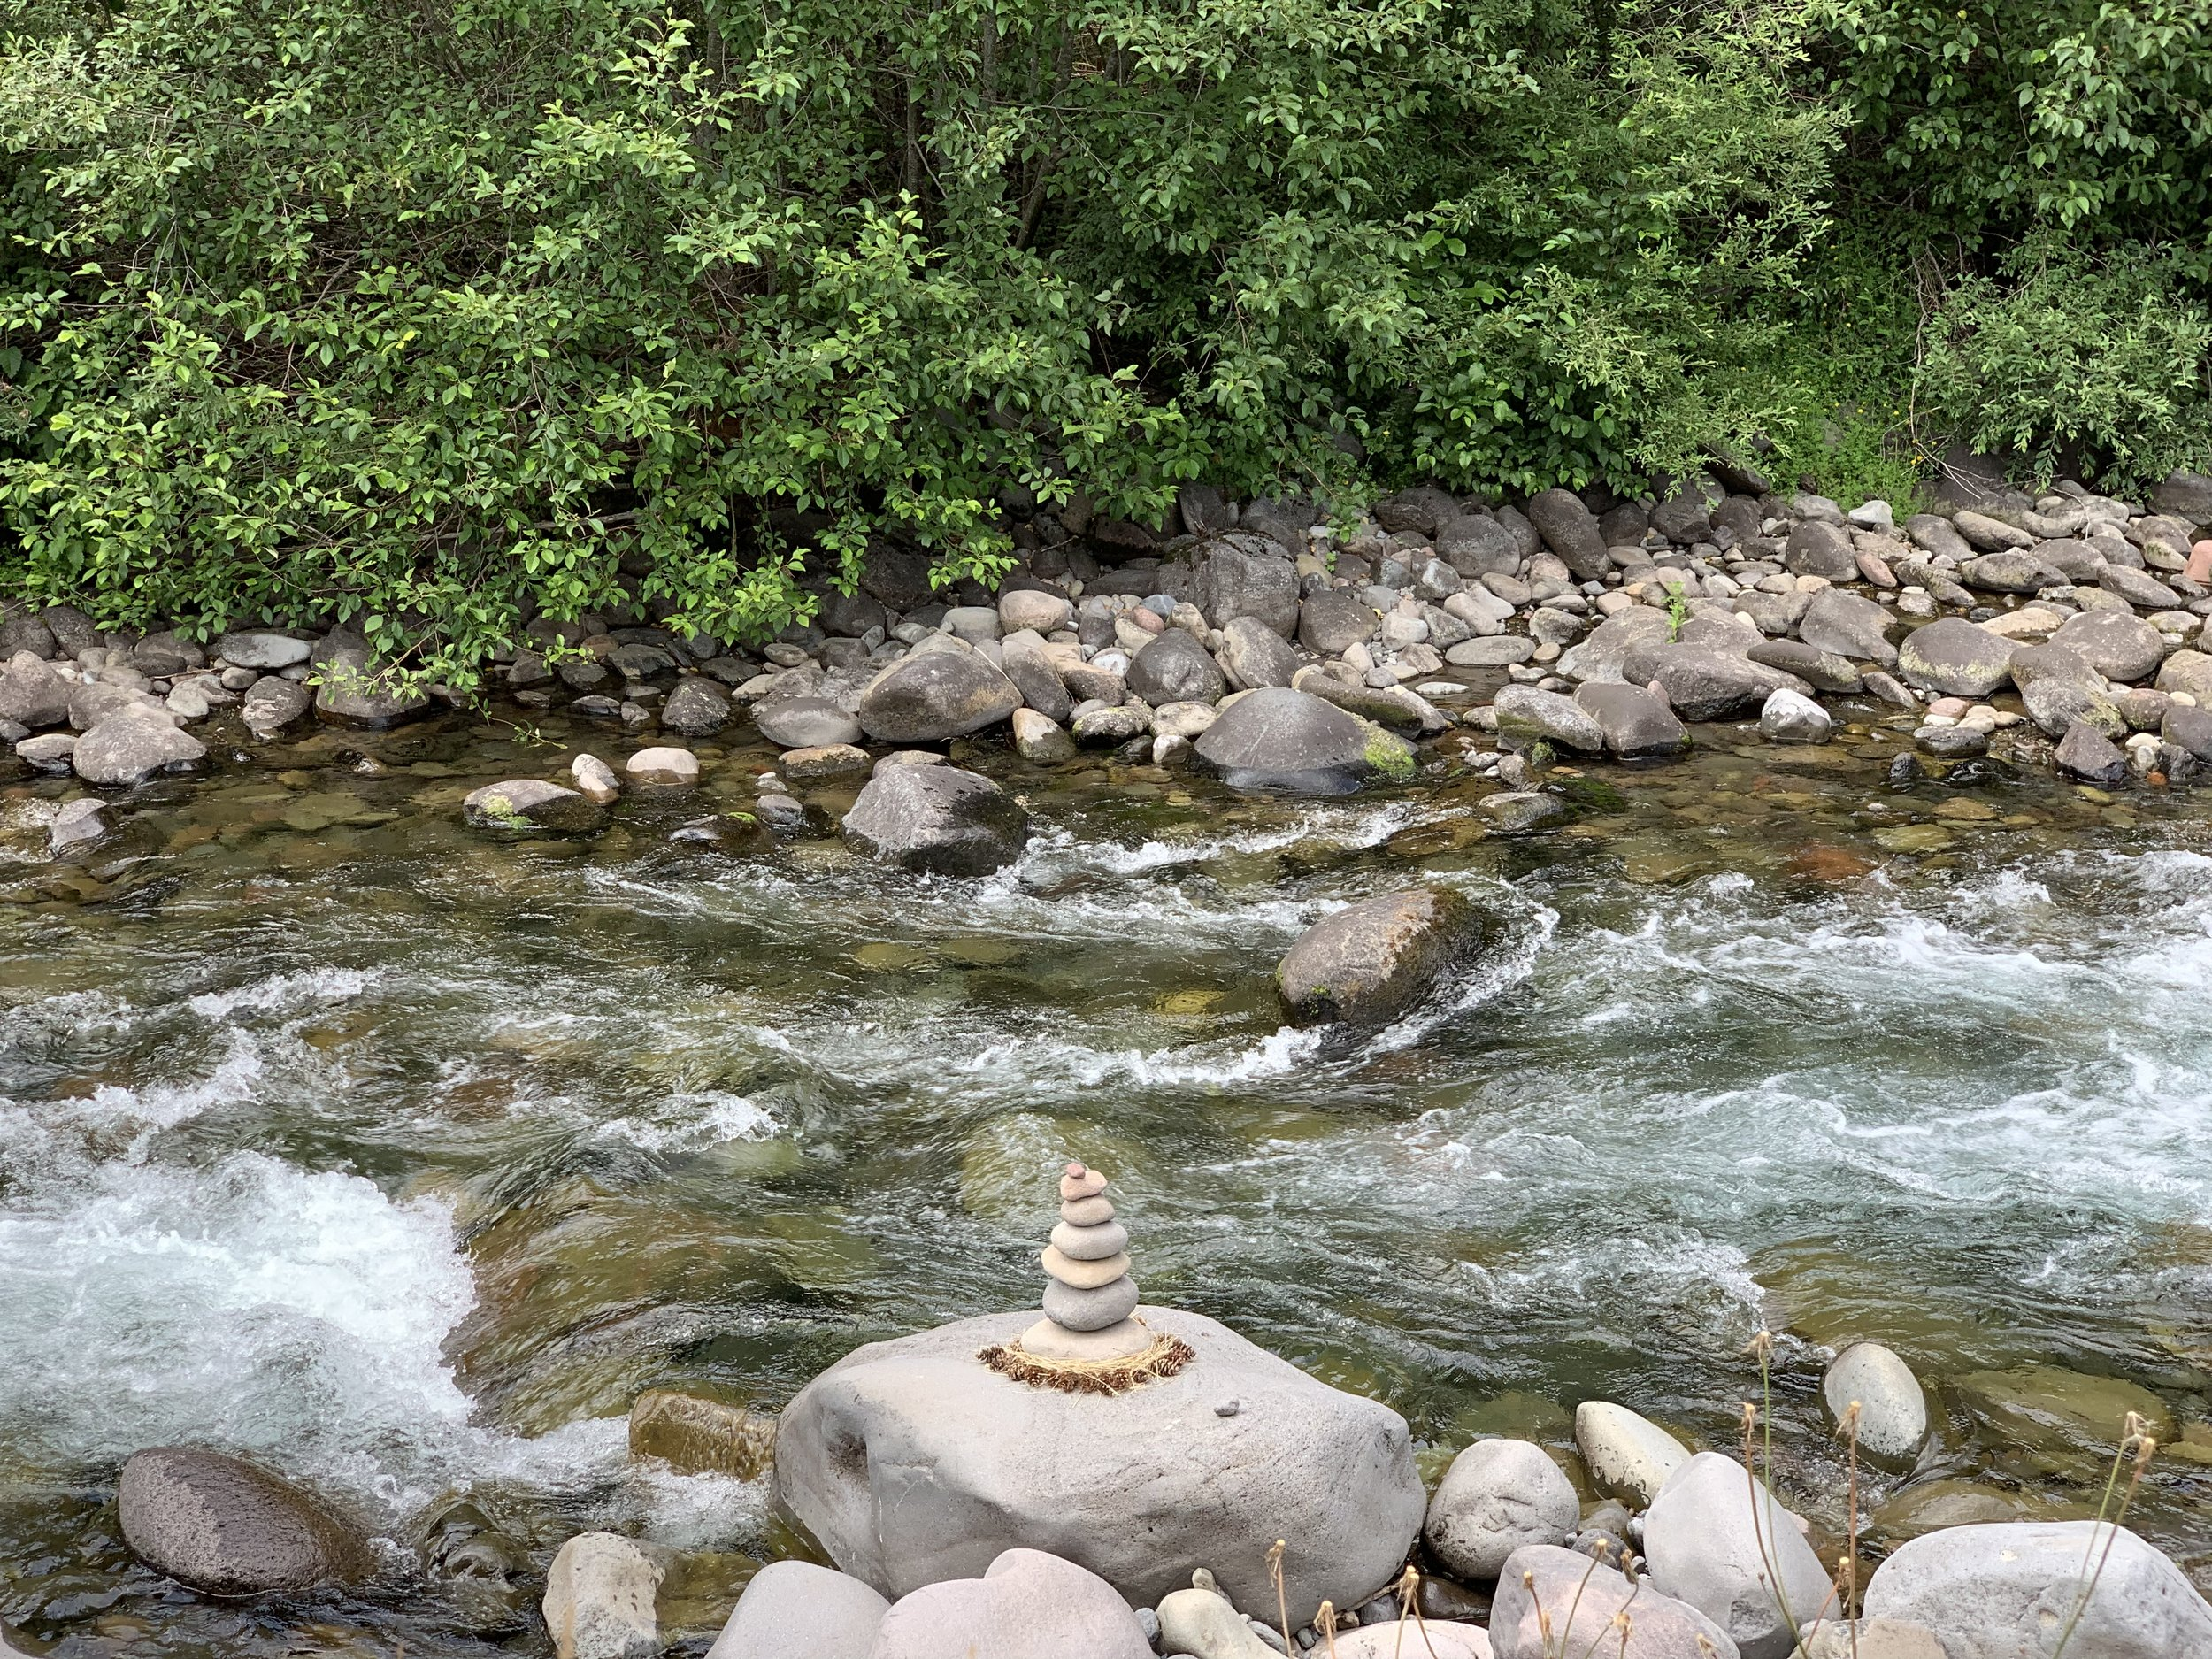 One of many cairns found on the Breitenbush property. A symbol of balance, simplicity, spirituality, peace, prayer, patience, direction, priority, and play.